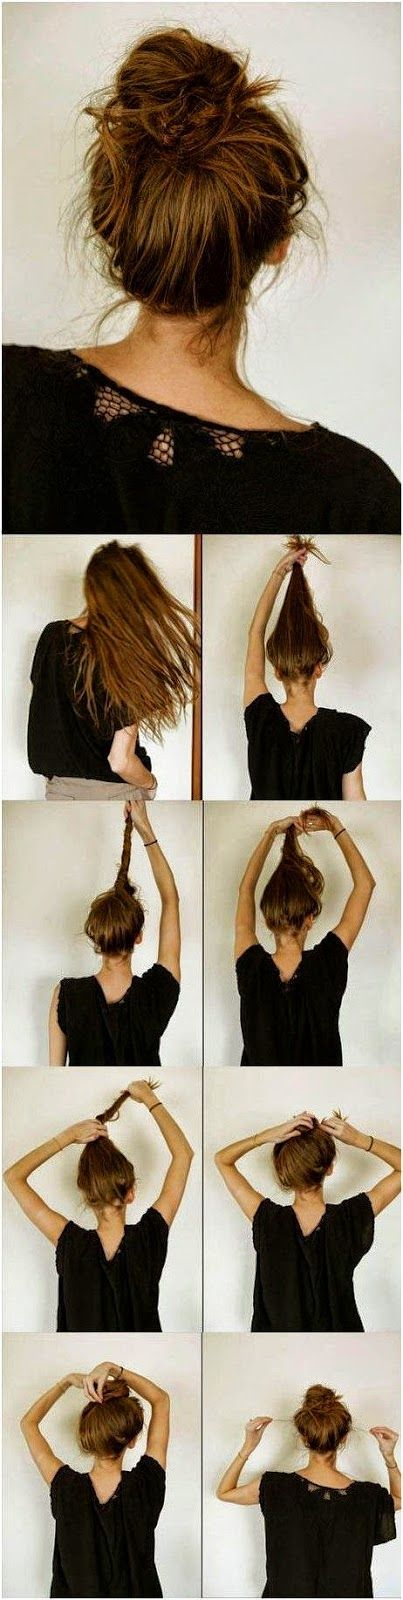 10 Ways To Make Cute Everyday Hairstyles Long Hair Tutorials Popular Haircuts Bun Hairstyles For Long Hair Cute Everyday Hairstyles Long Hair Styles